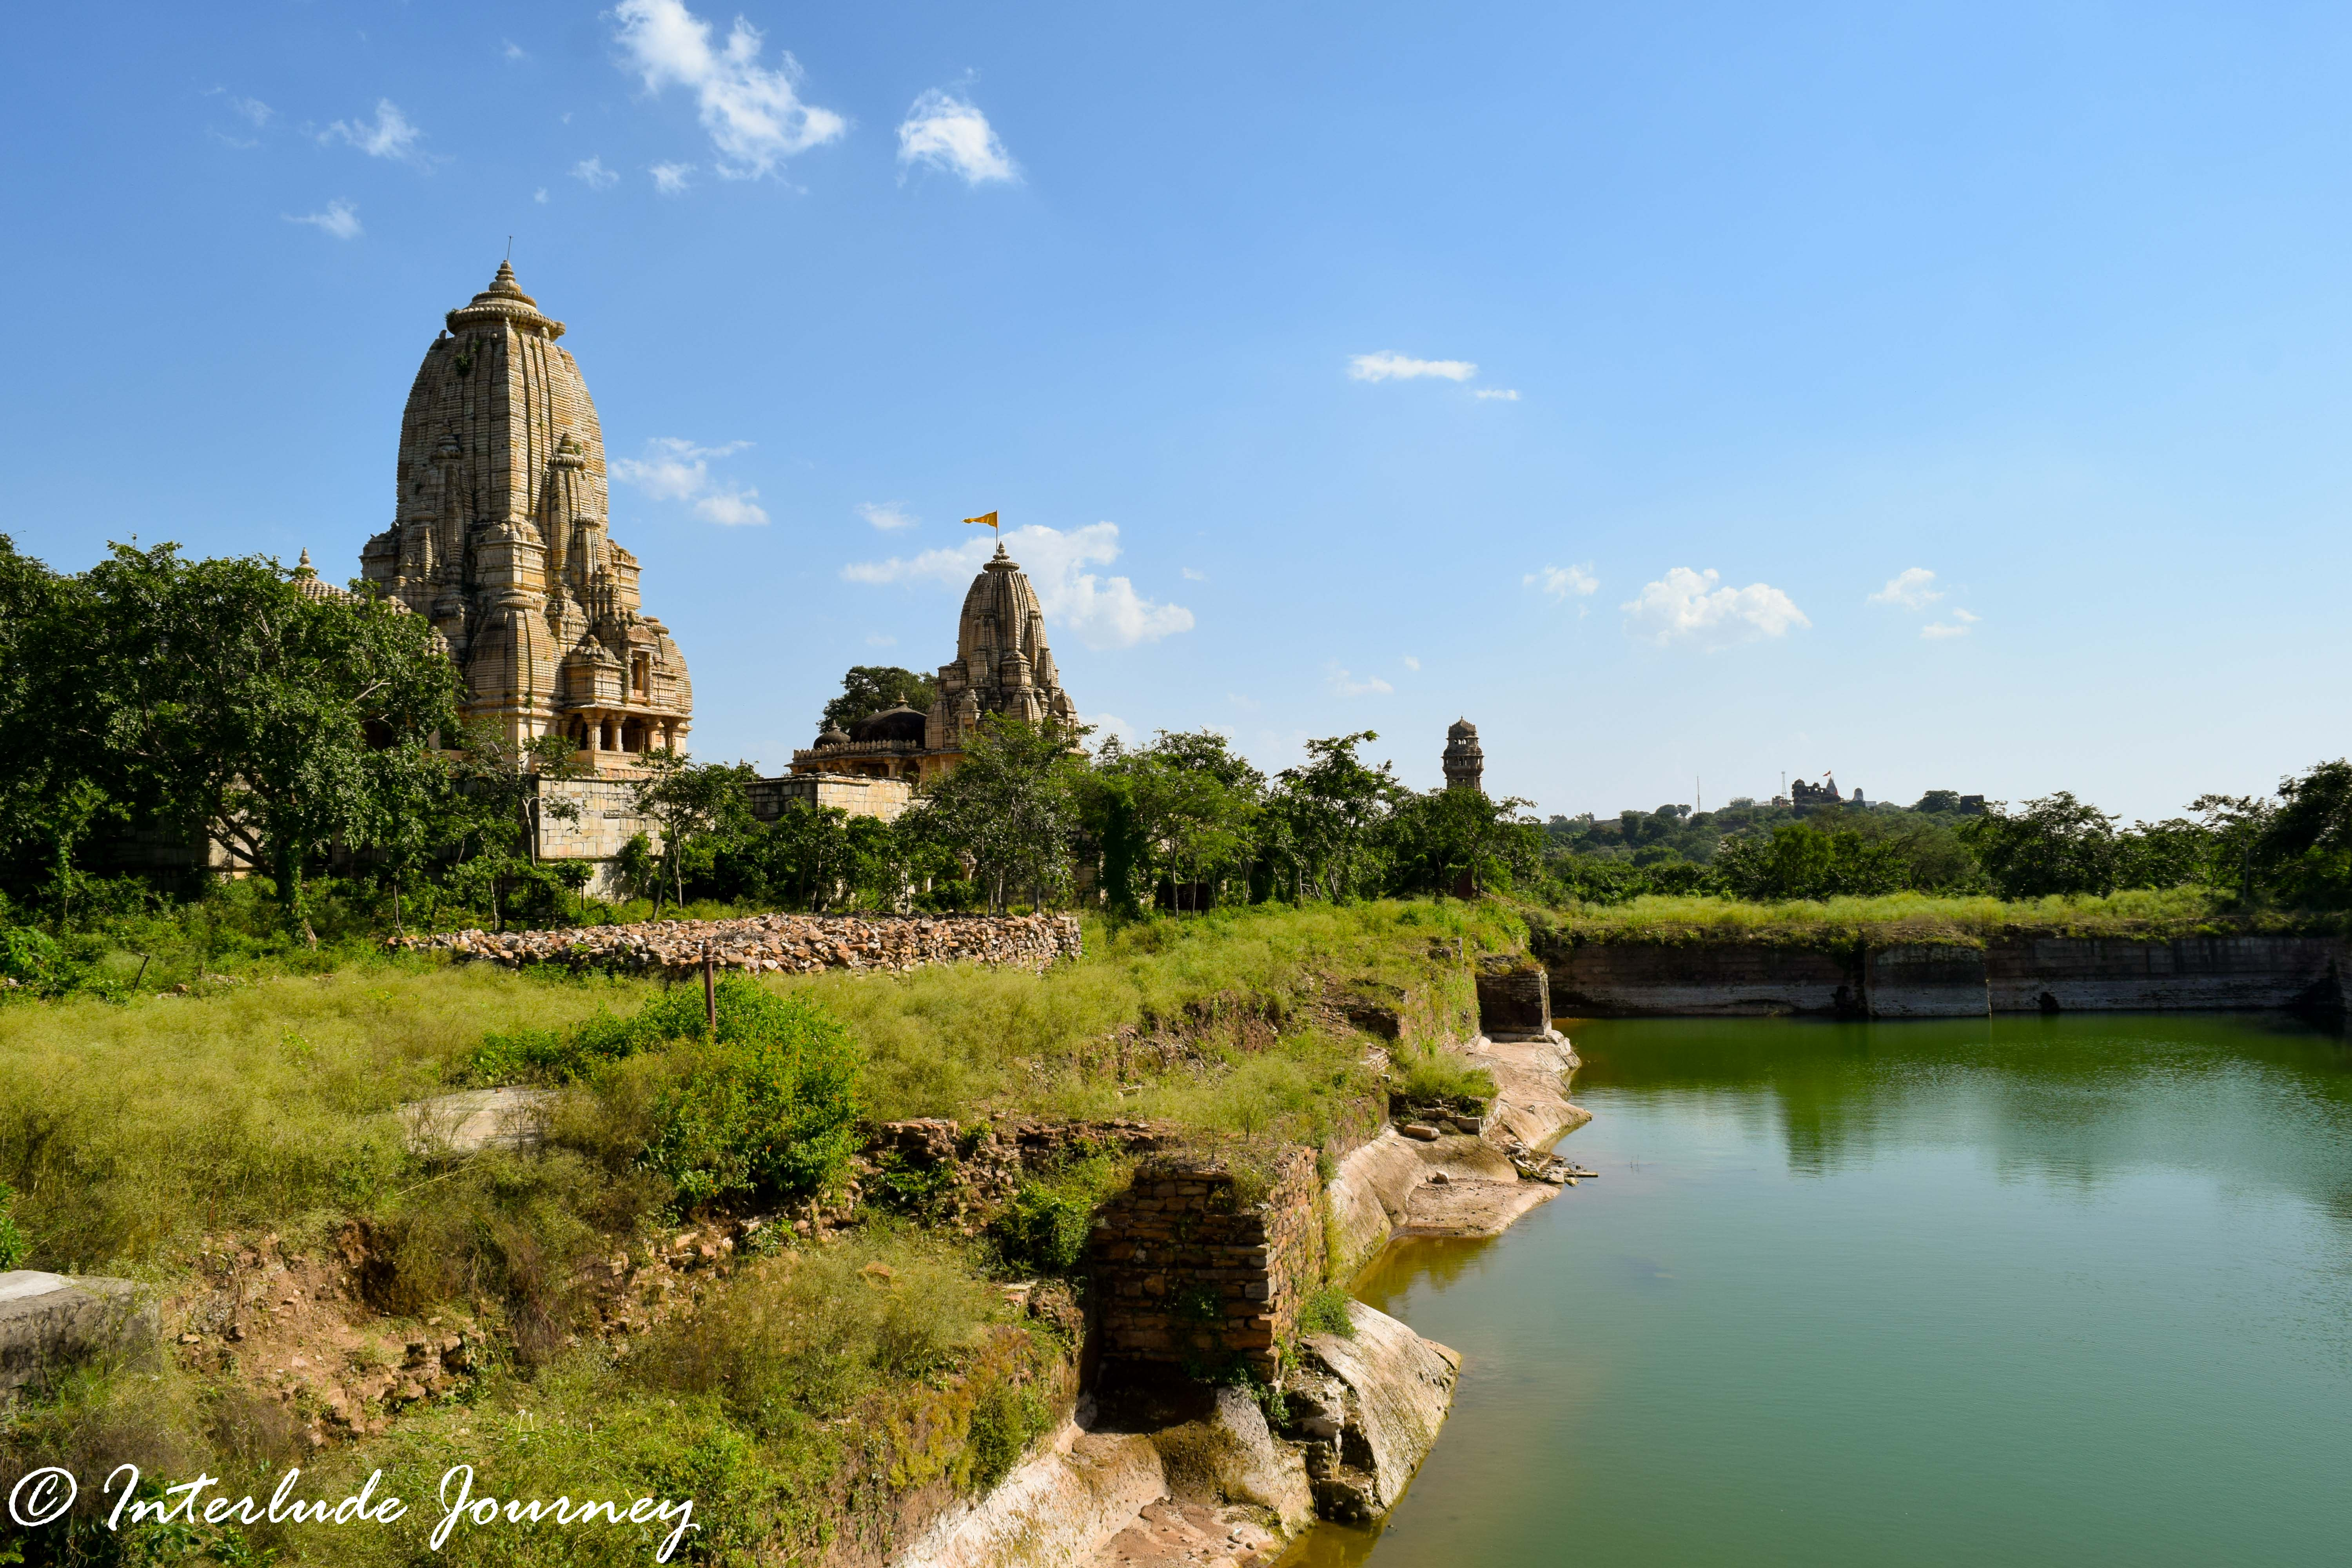 Chittorgarh - A Citadel of Valor, Sacrifice and Honor